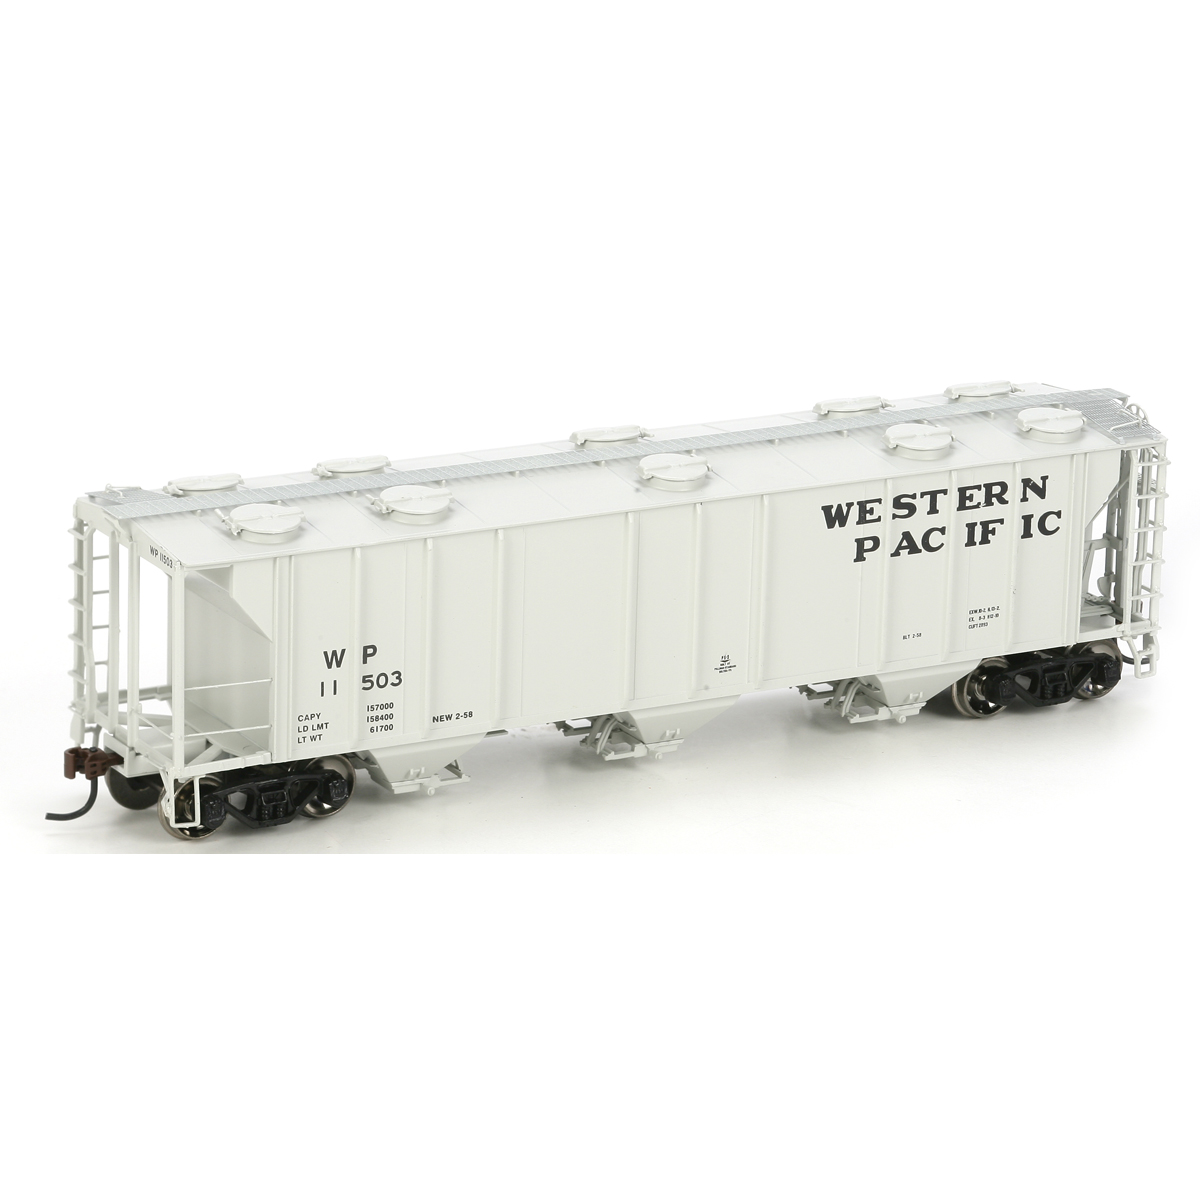 HO RTR PS-2 2893 Covered Hopper, WP #11503